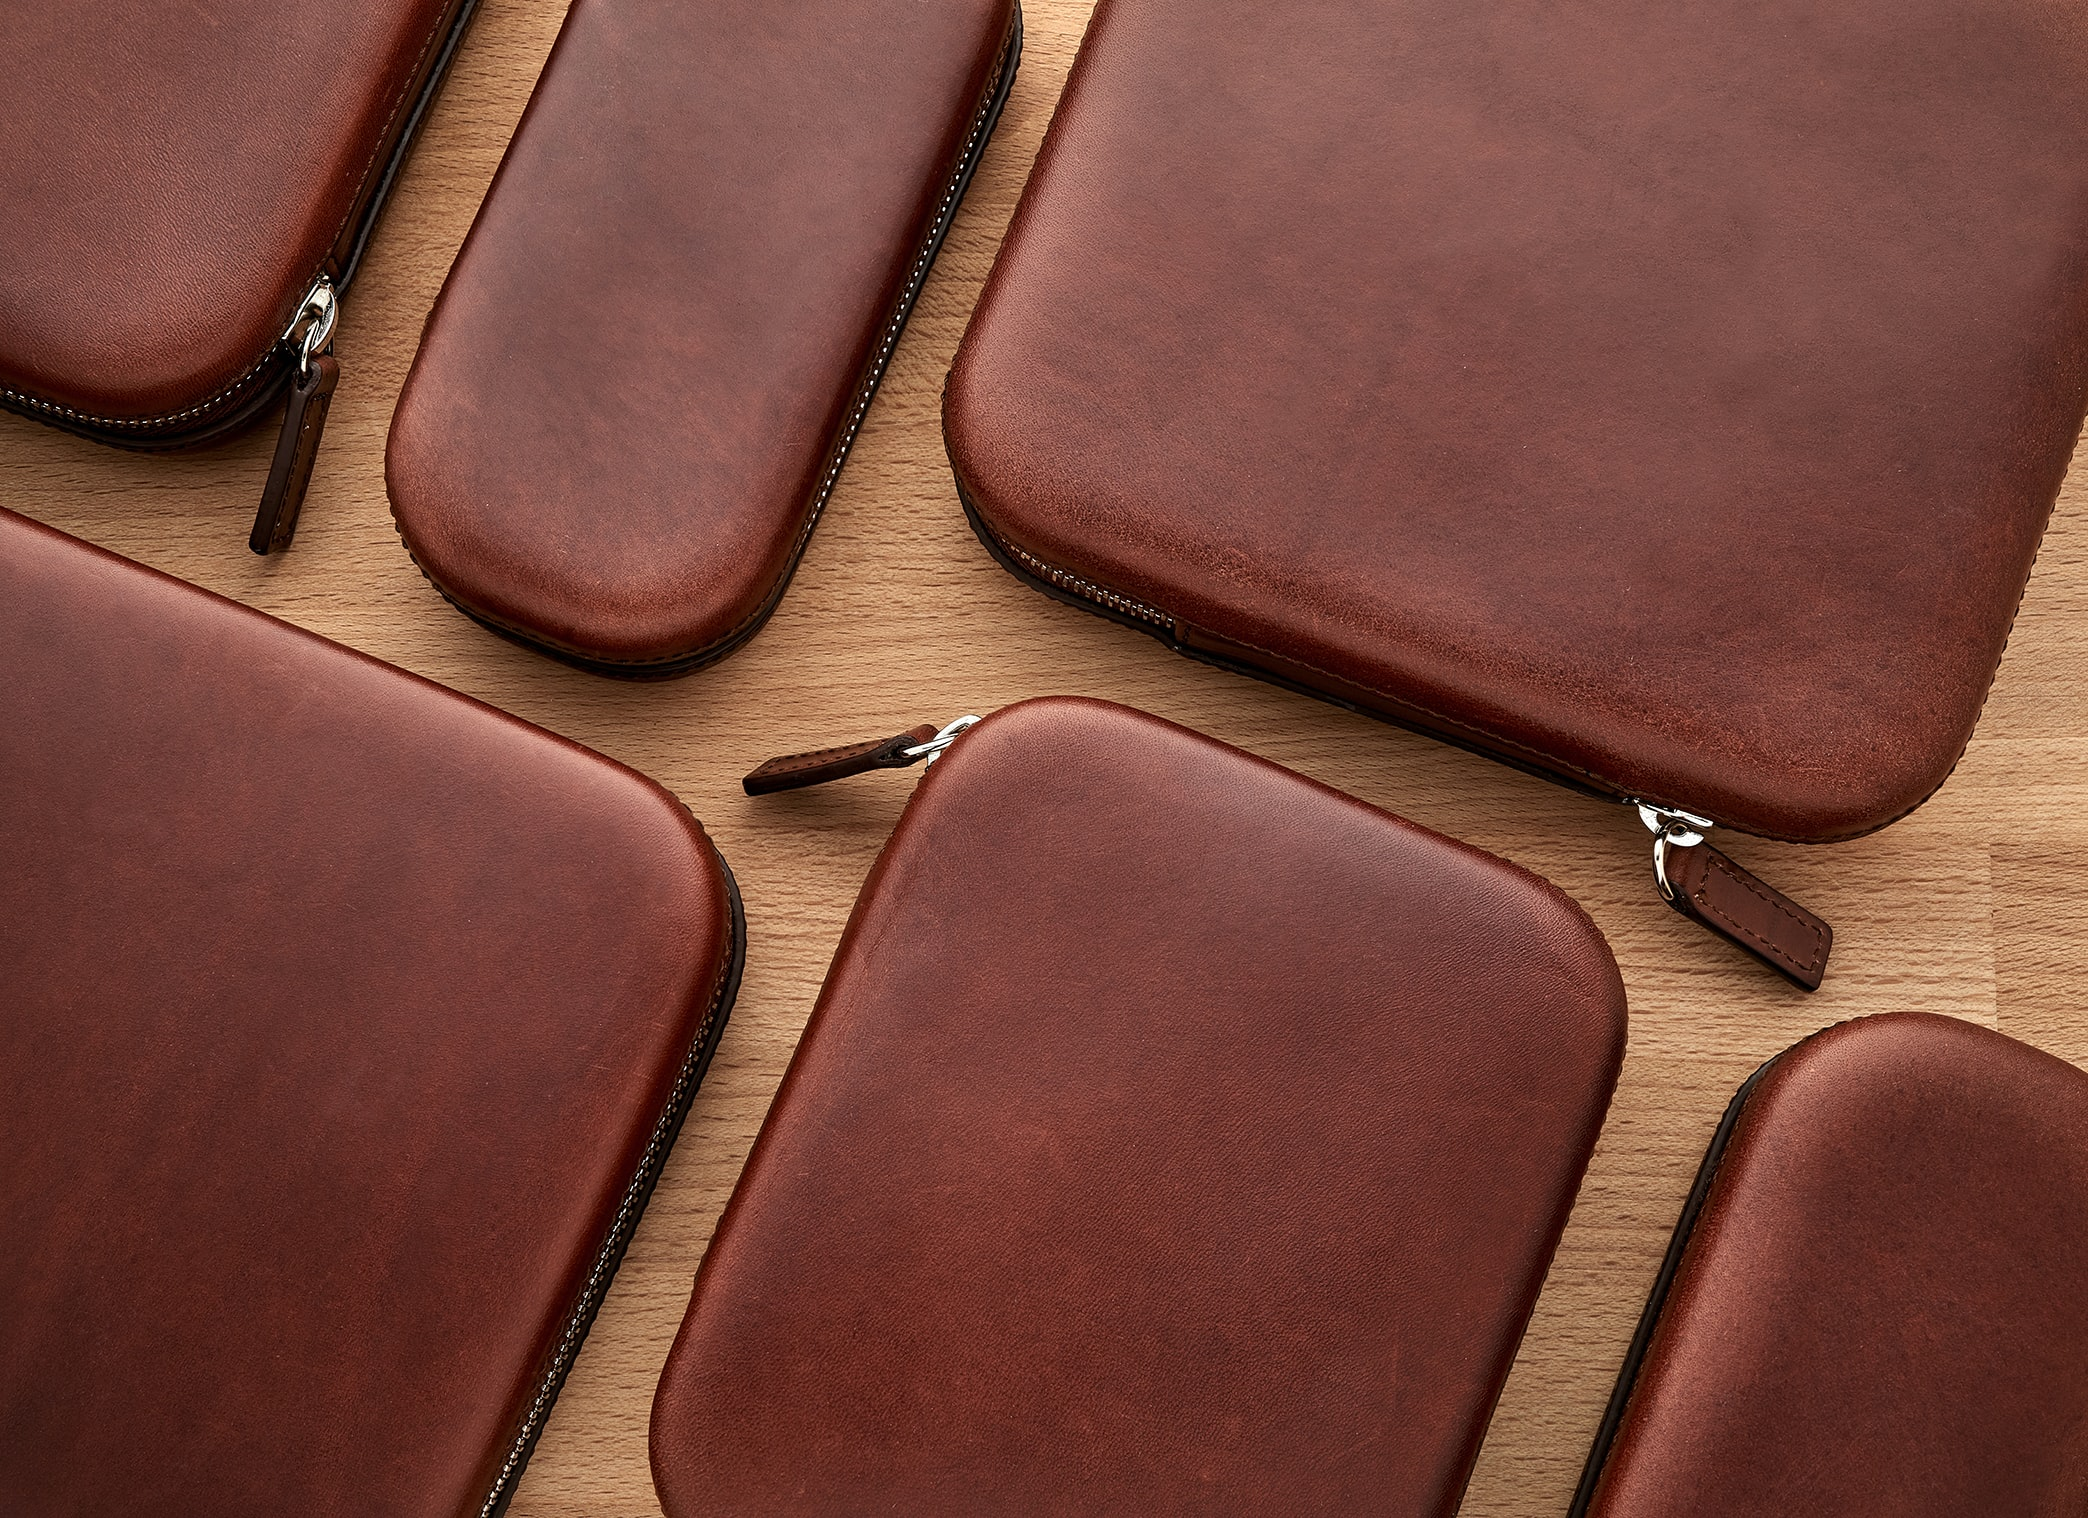 In The Shop – Introducing: The Moulded Oak-Tanned Leather Case Collection CASE WC BURG Group HERO